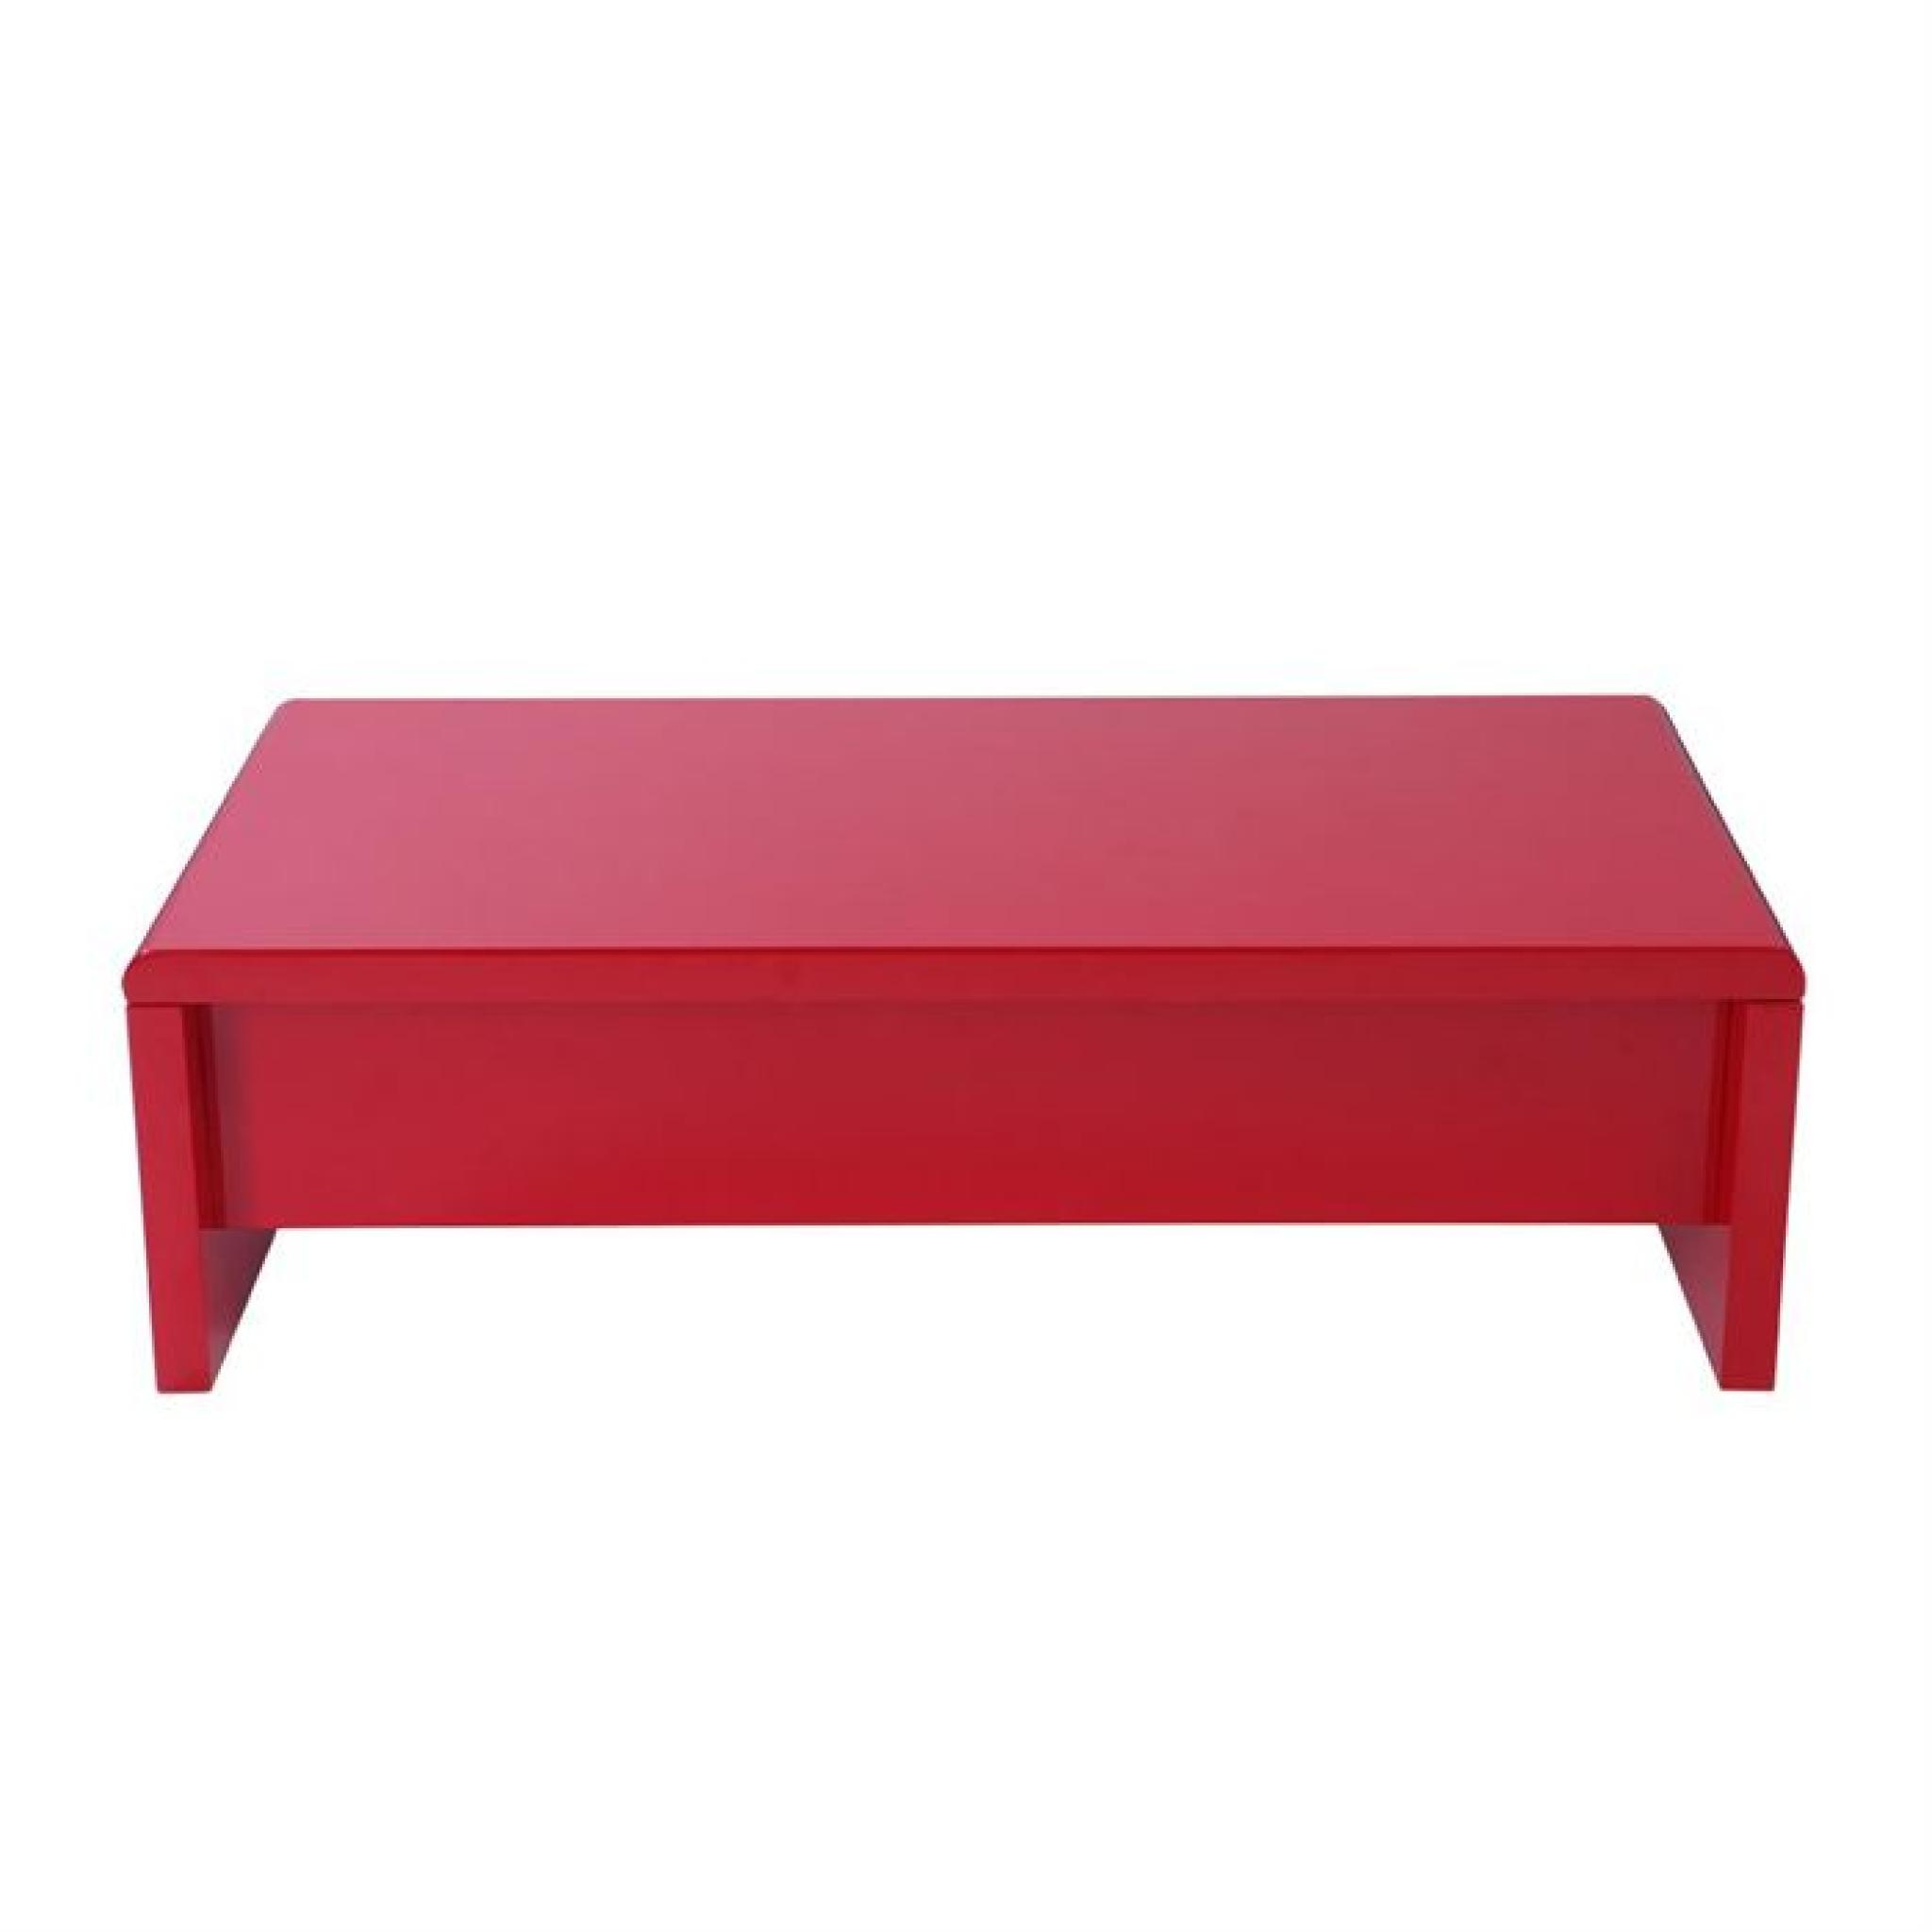 Table basse relevable lola